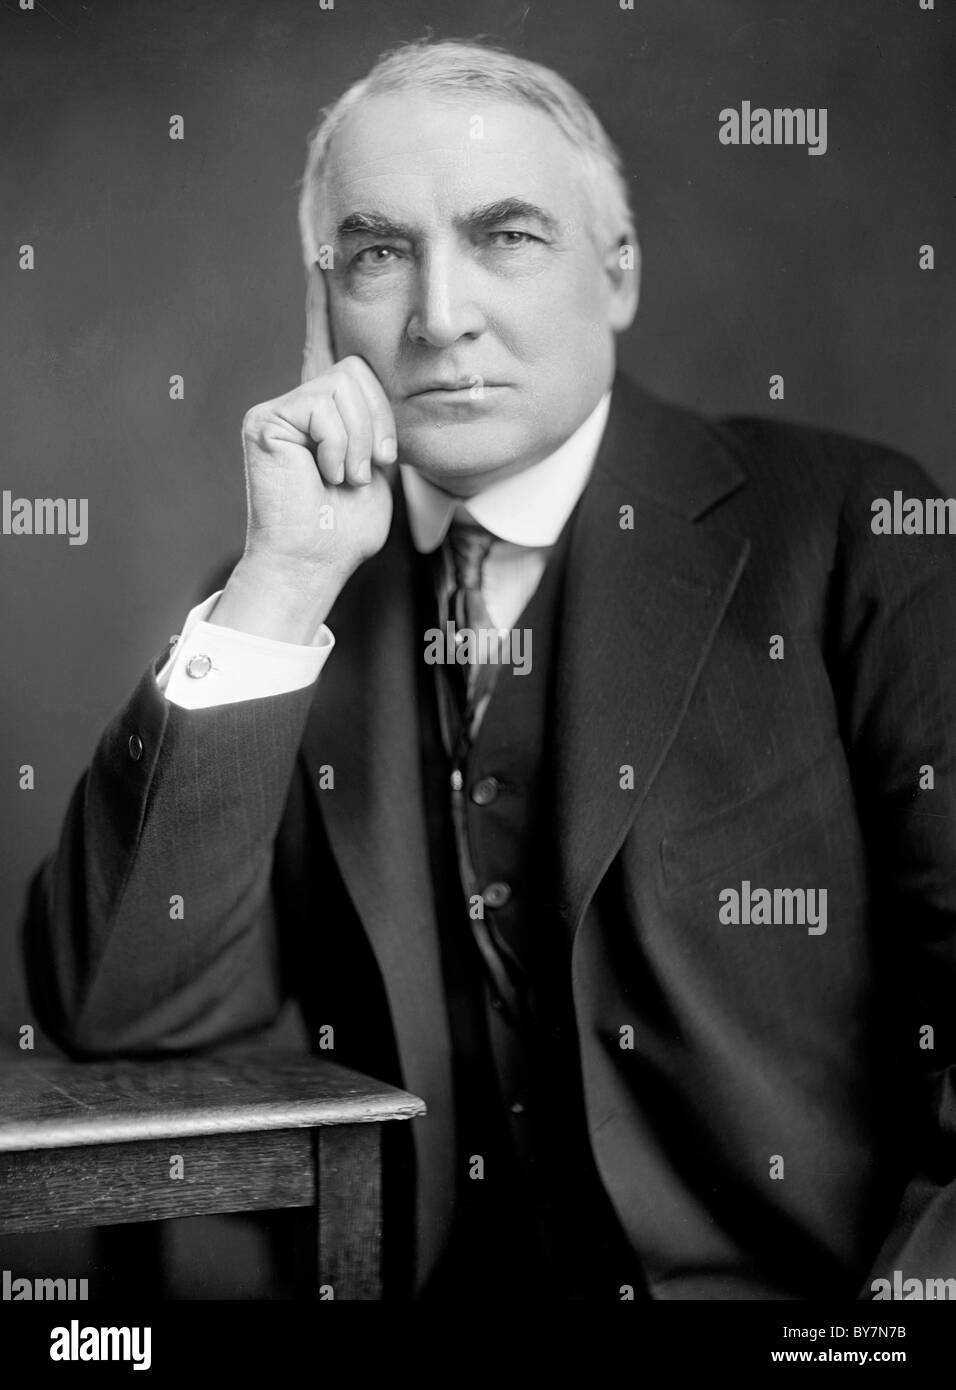 Warren Harding was the 29th President of the United States. - Stock Image